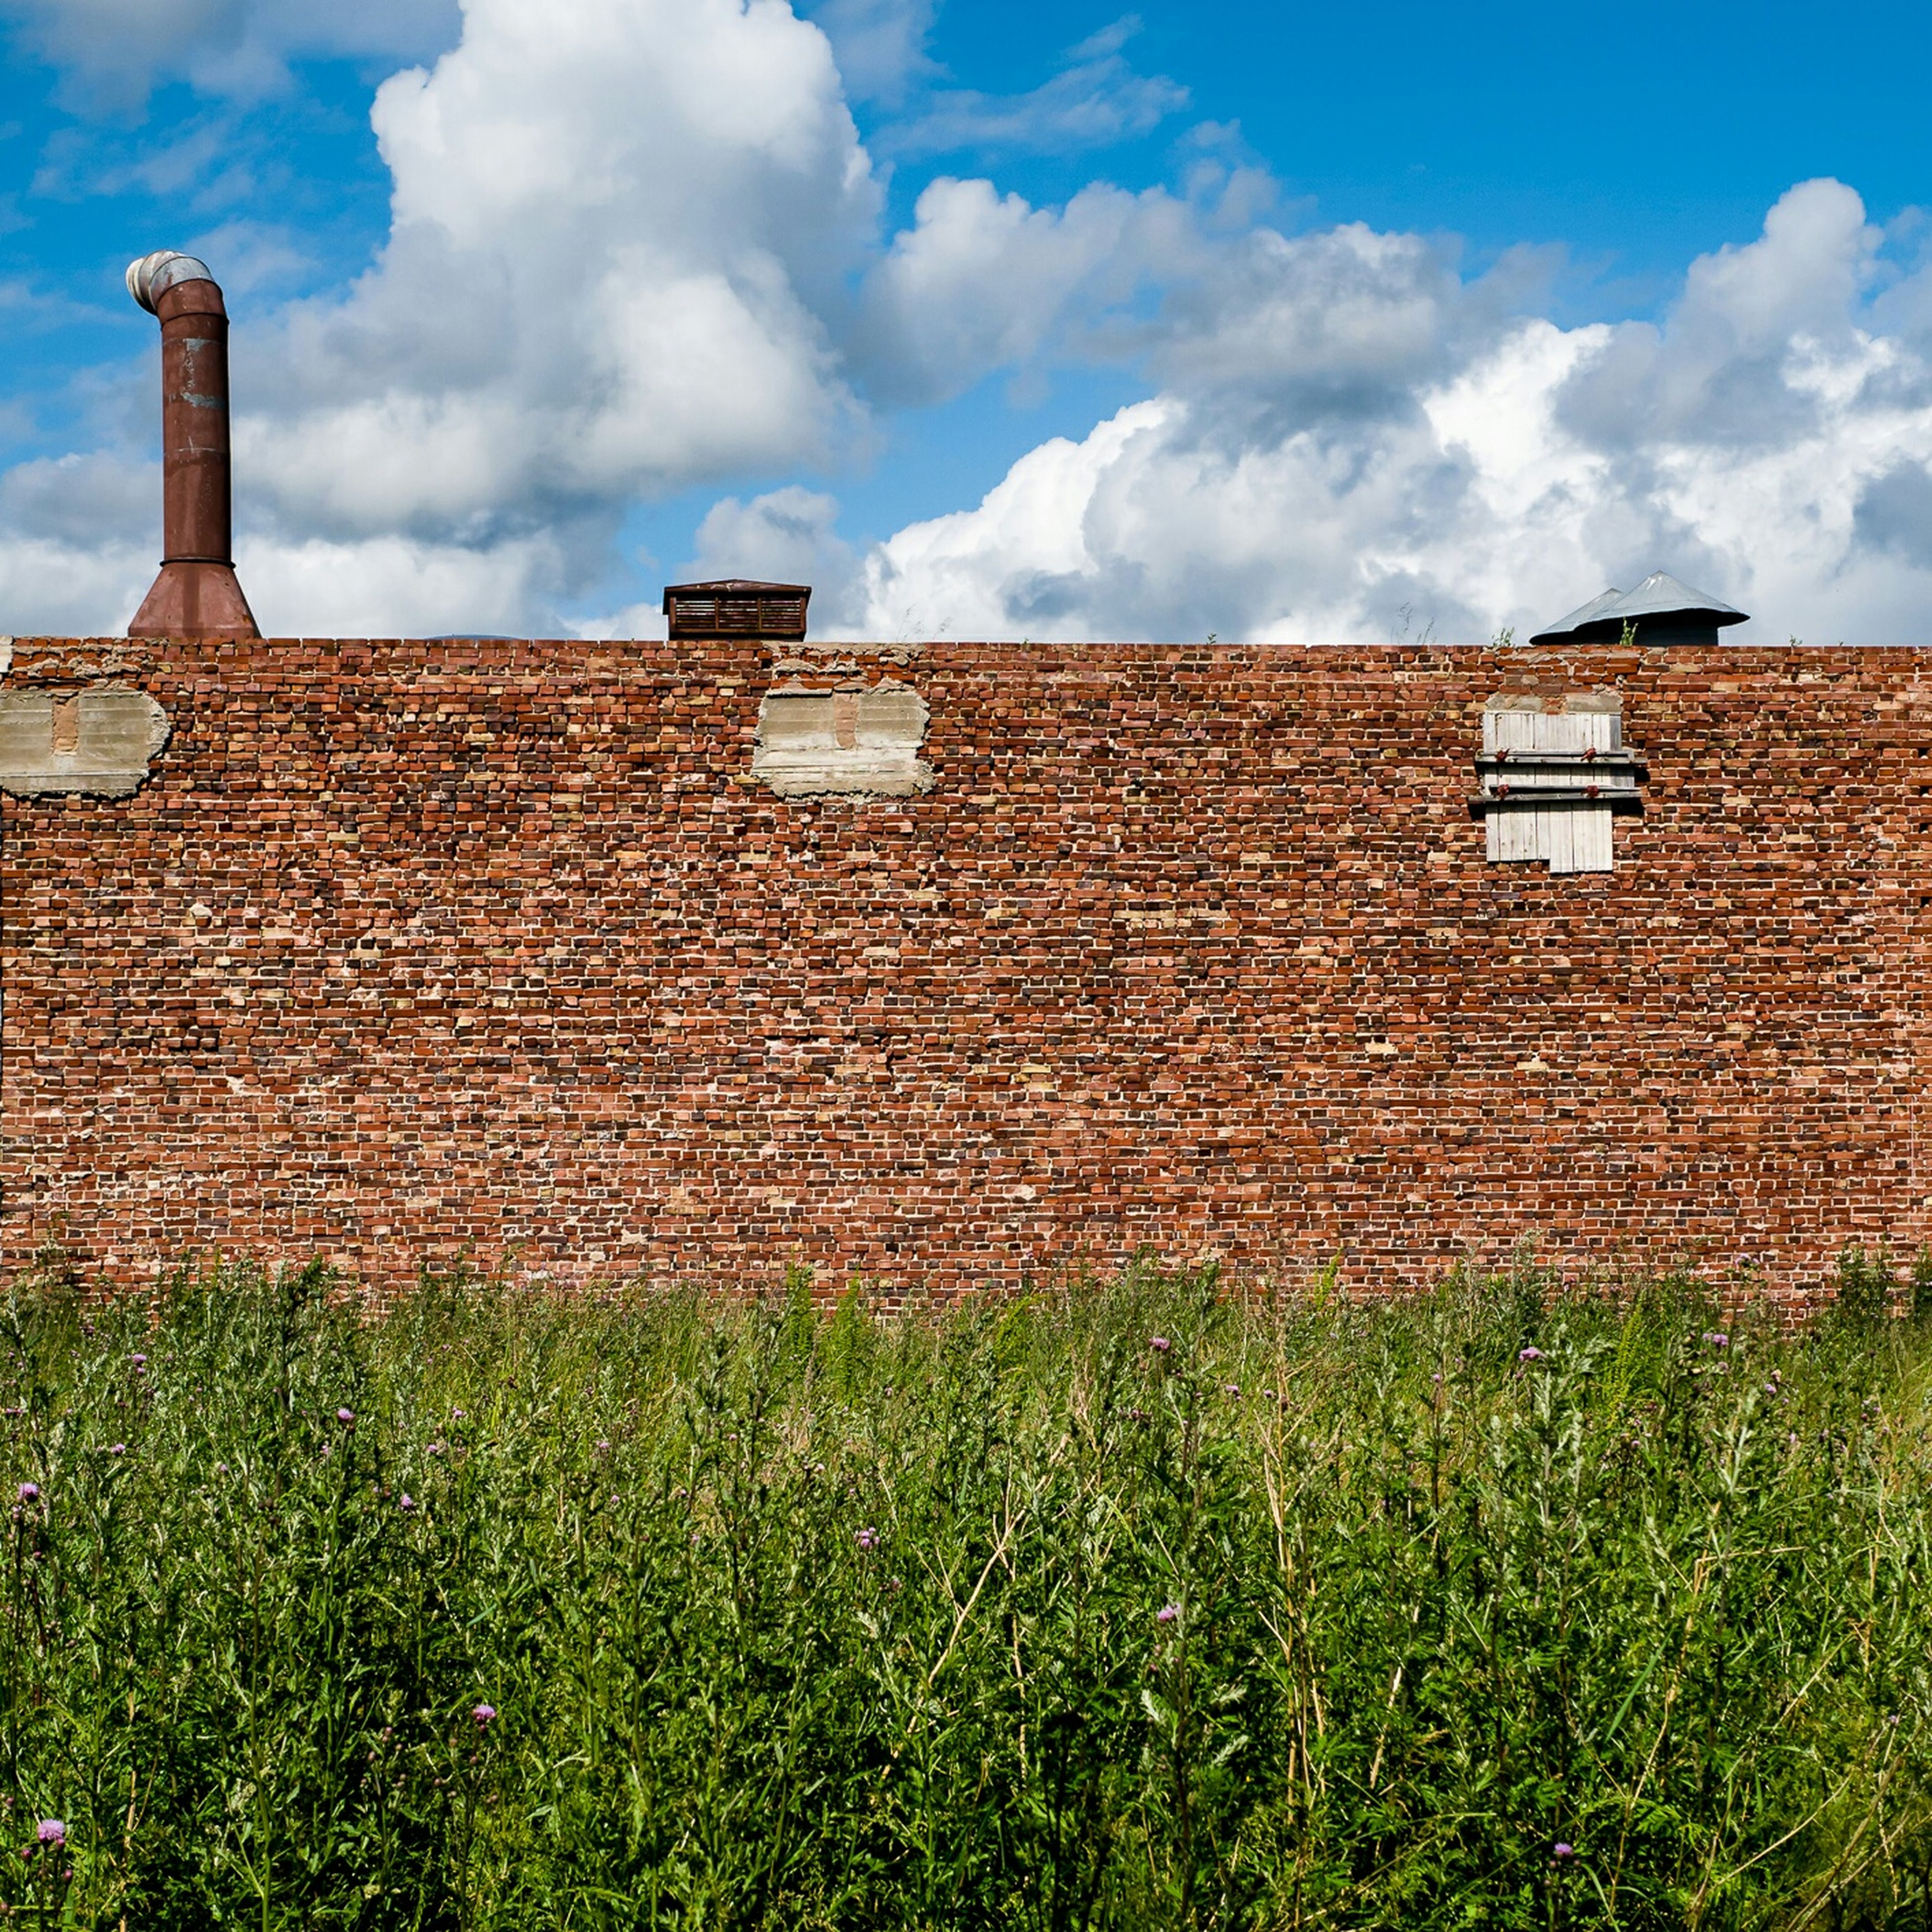 building exterior, architecture, built structure, sky, grass, field, cloud - sky, rural scene, house, cloud, plant, agriculture, day, landscape, growth, grassy, stone wall, old, outdoors, farm